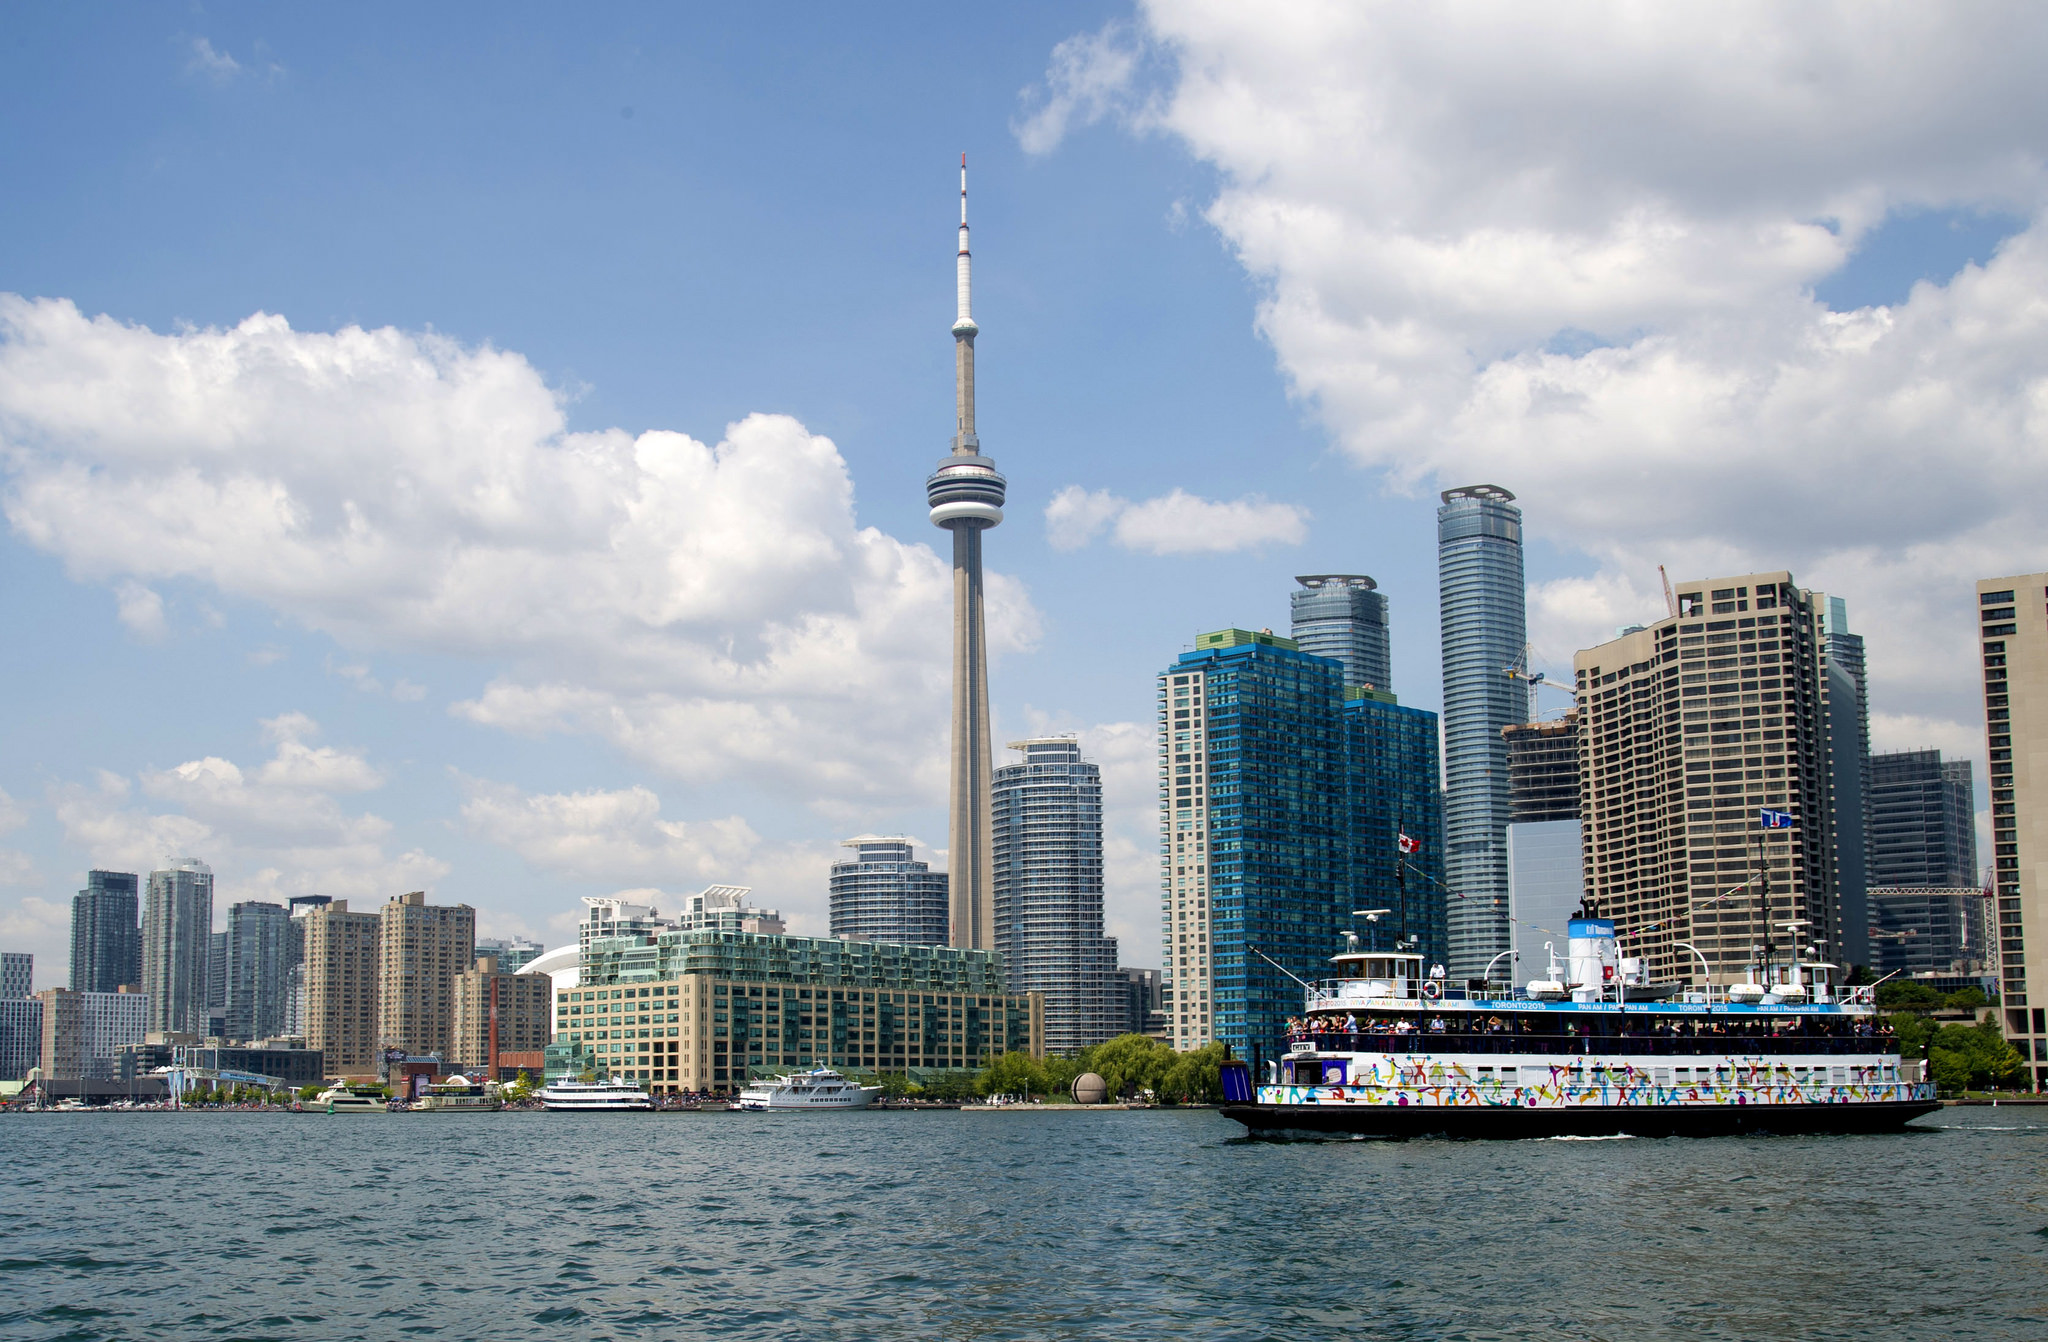 The future of Toronto real estate is bright (Image Credit: The City of Toronto, Flickr)